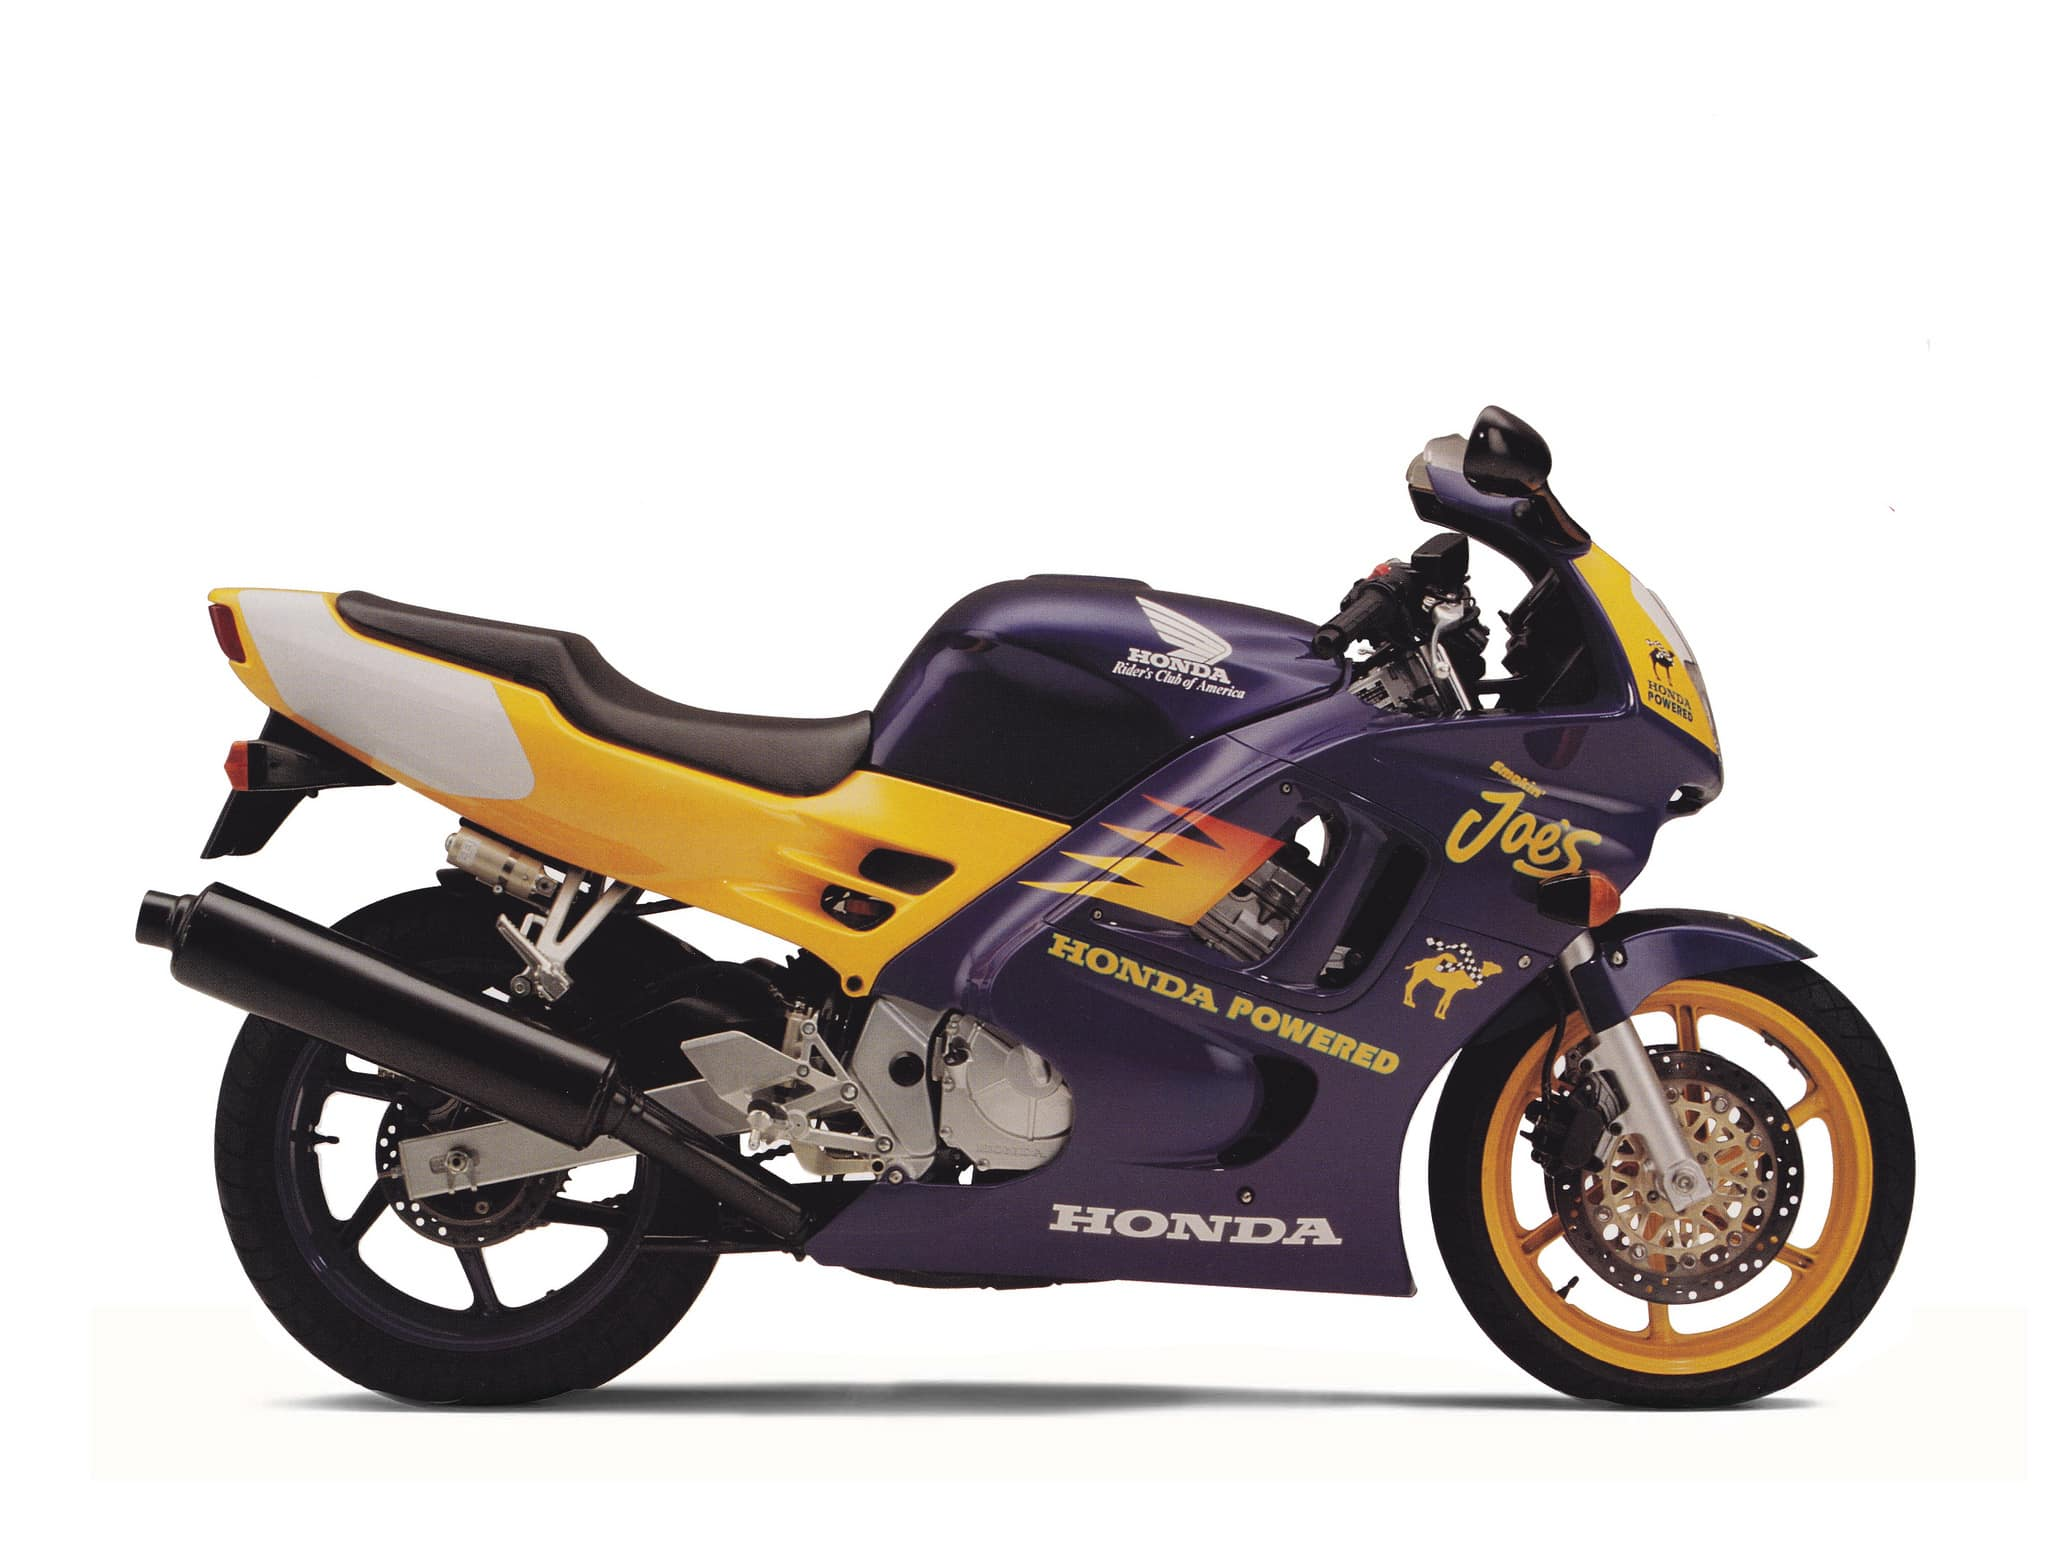 Honda Cbr600f Buyers Guide Fast Classic And Awesome